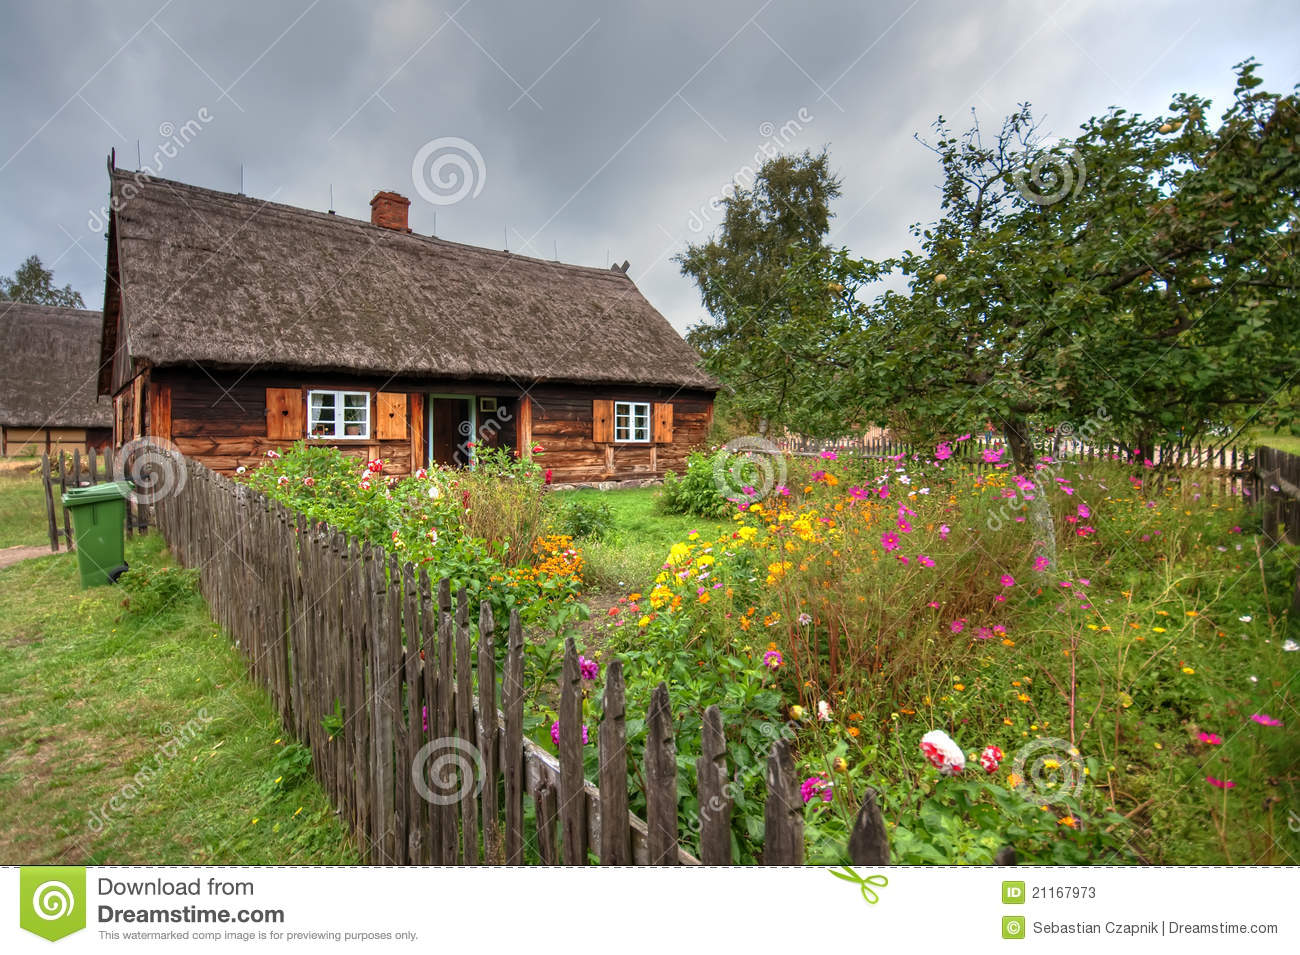 Old Village In Poland Stock Photos - Image: 21167973